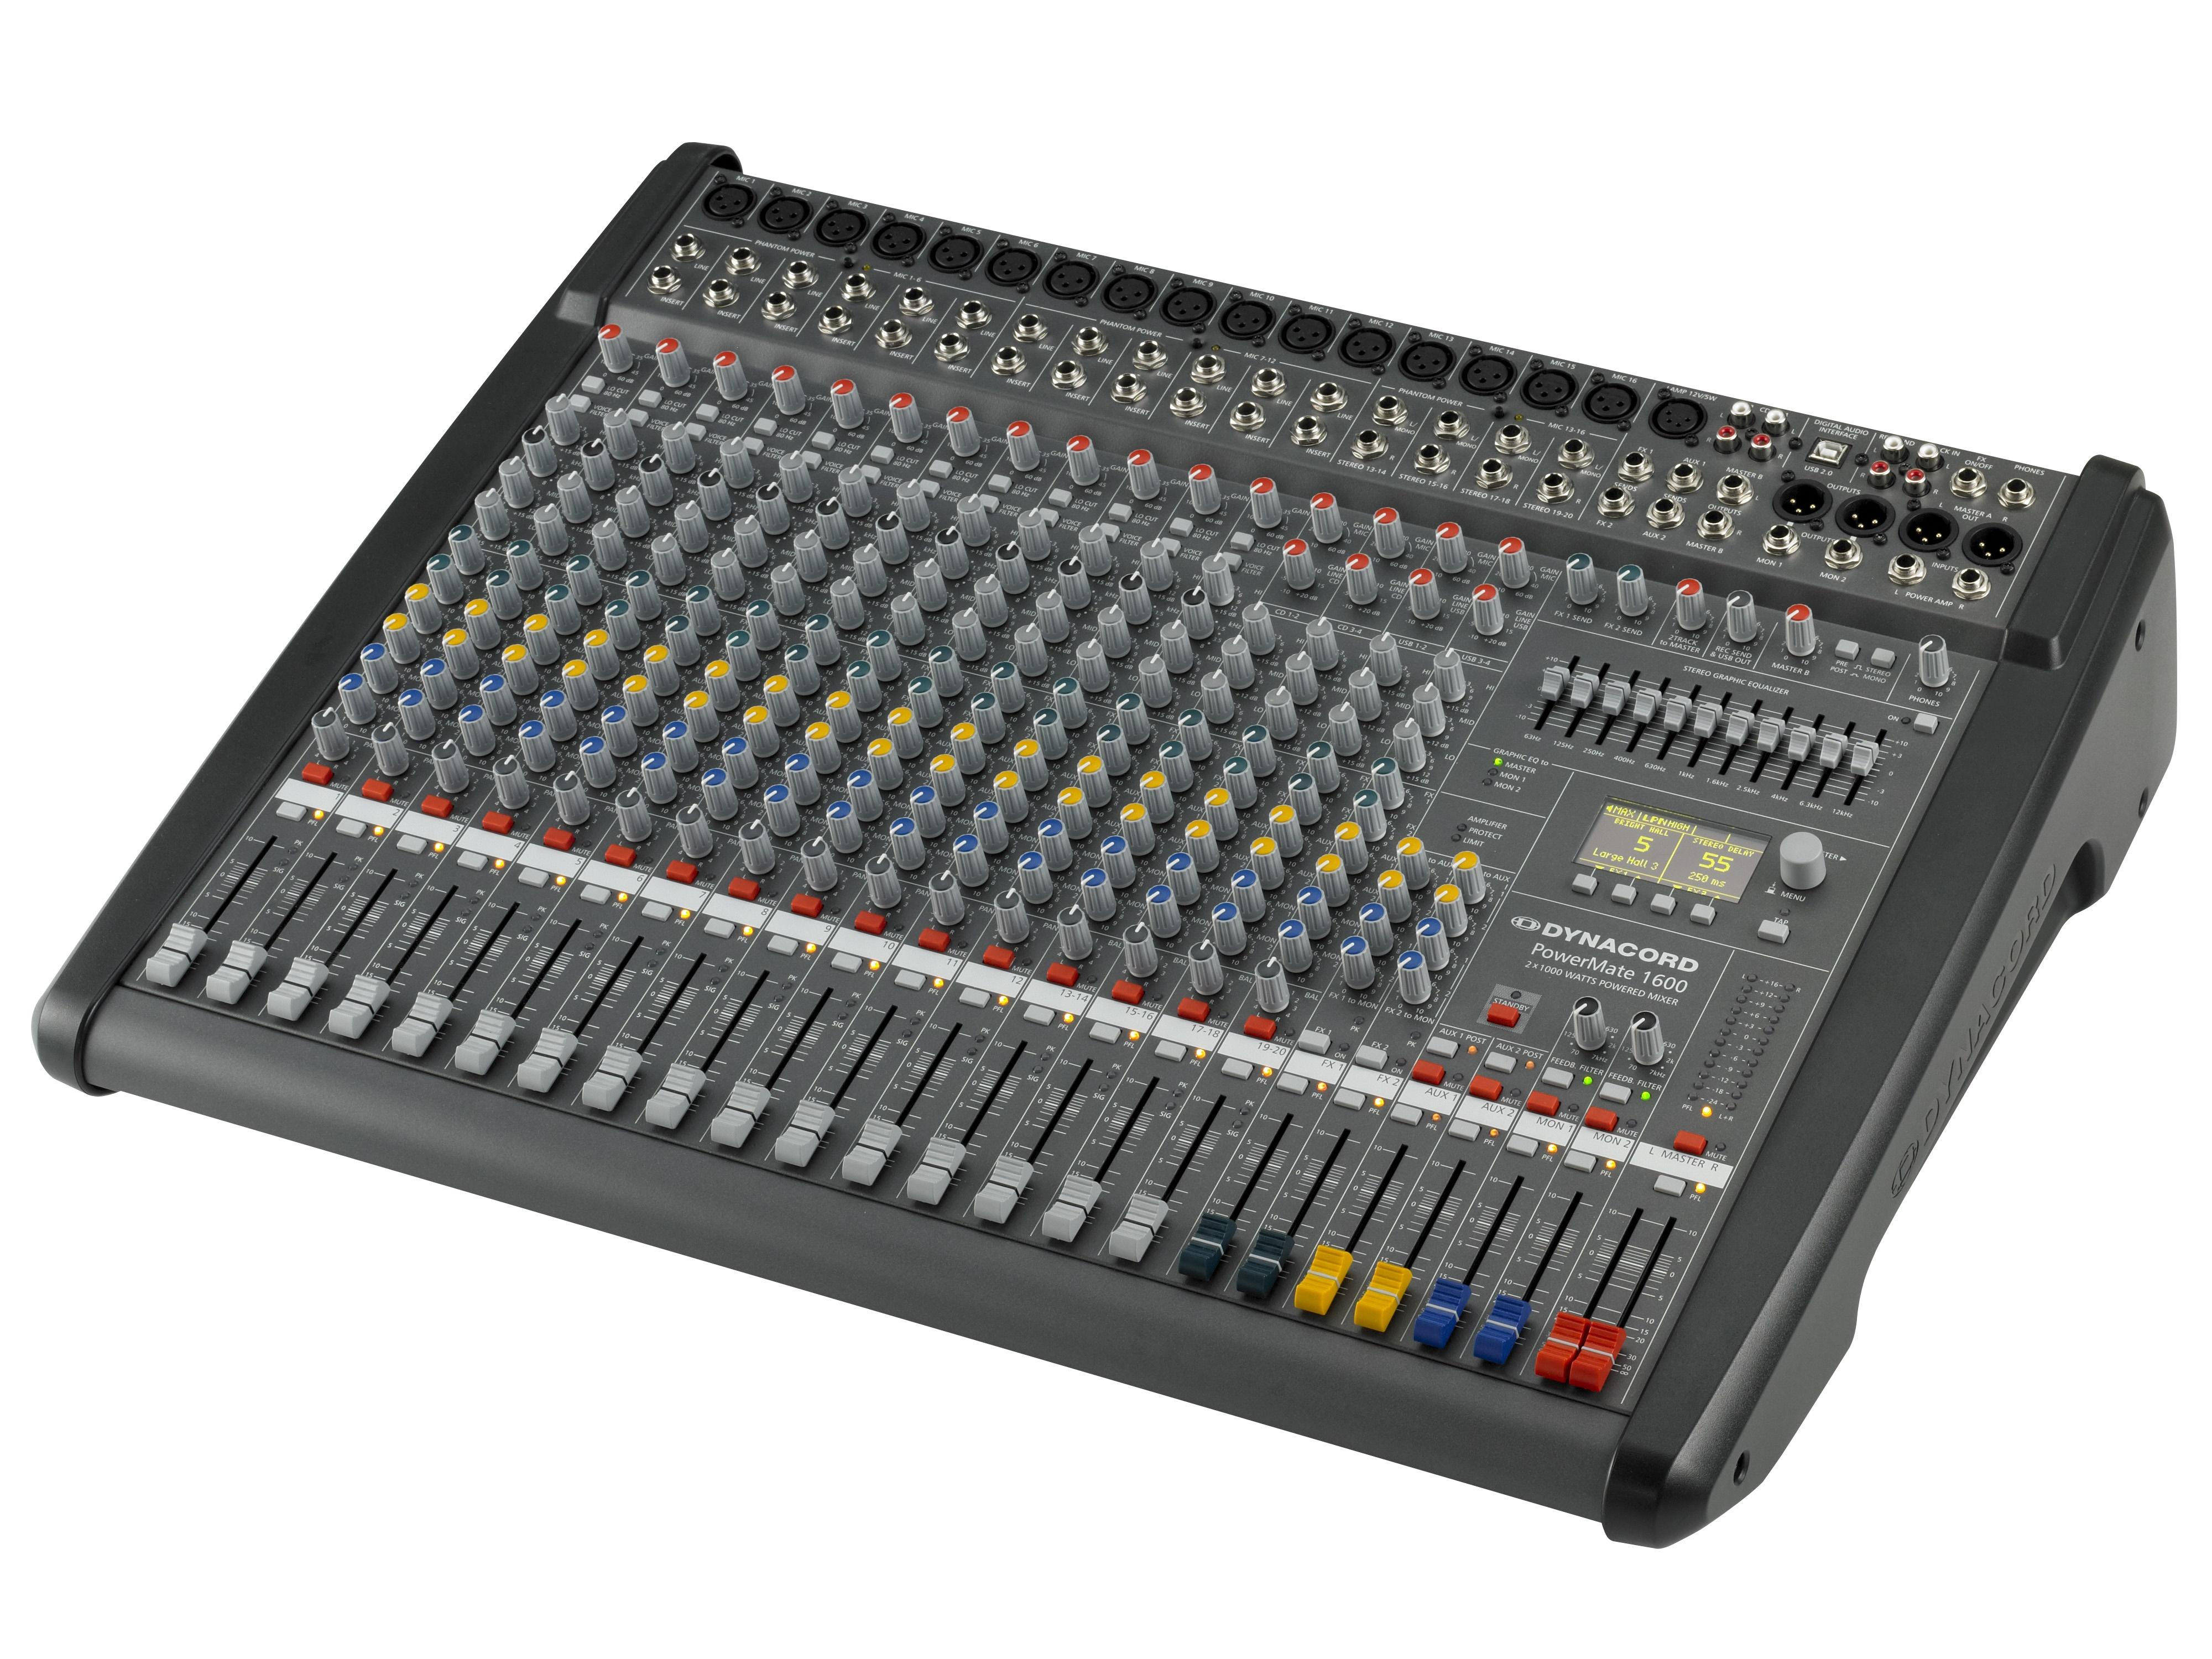 DCPM16003UNIV Power Mixer/12 Mic/Line w 4 Mic/Stereo Line Channels/6xAUX/Dual 24 bit Stereo Effects/USB Audio Interface/Power Amp 2x 1000W by Dynacord